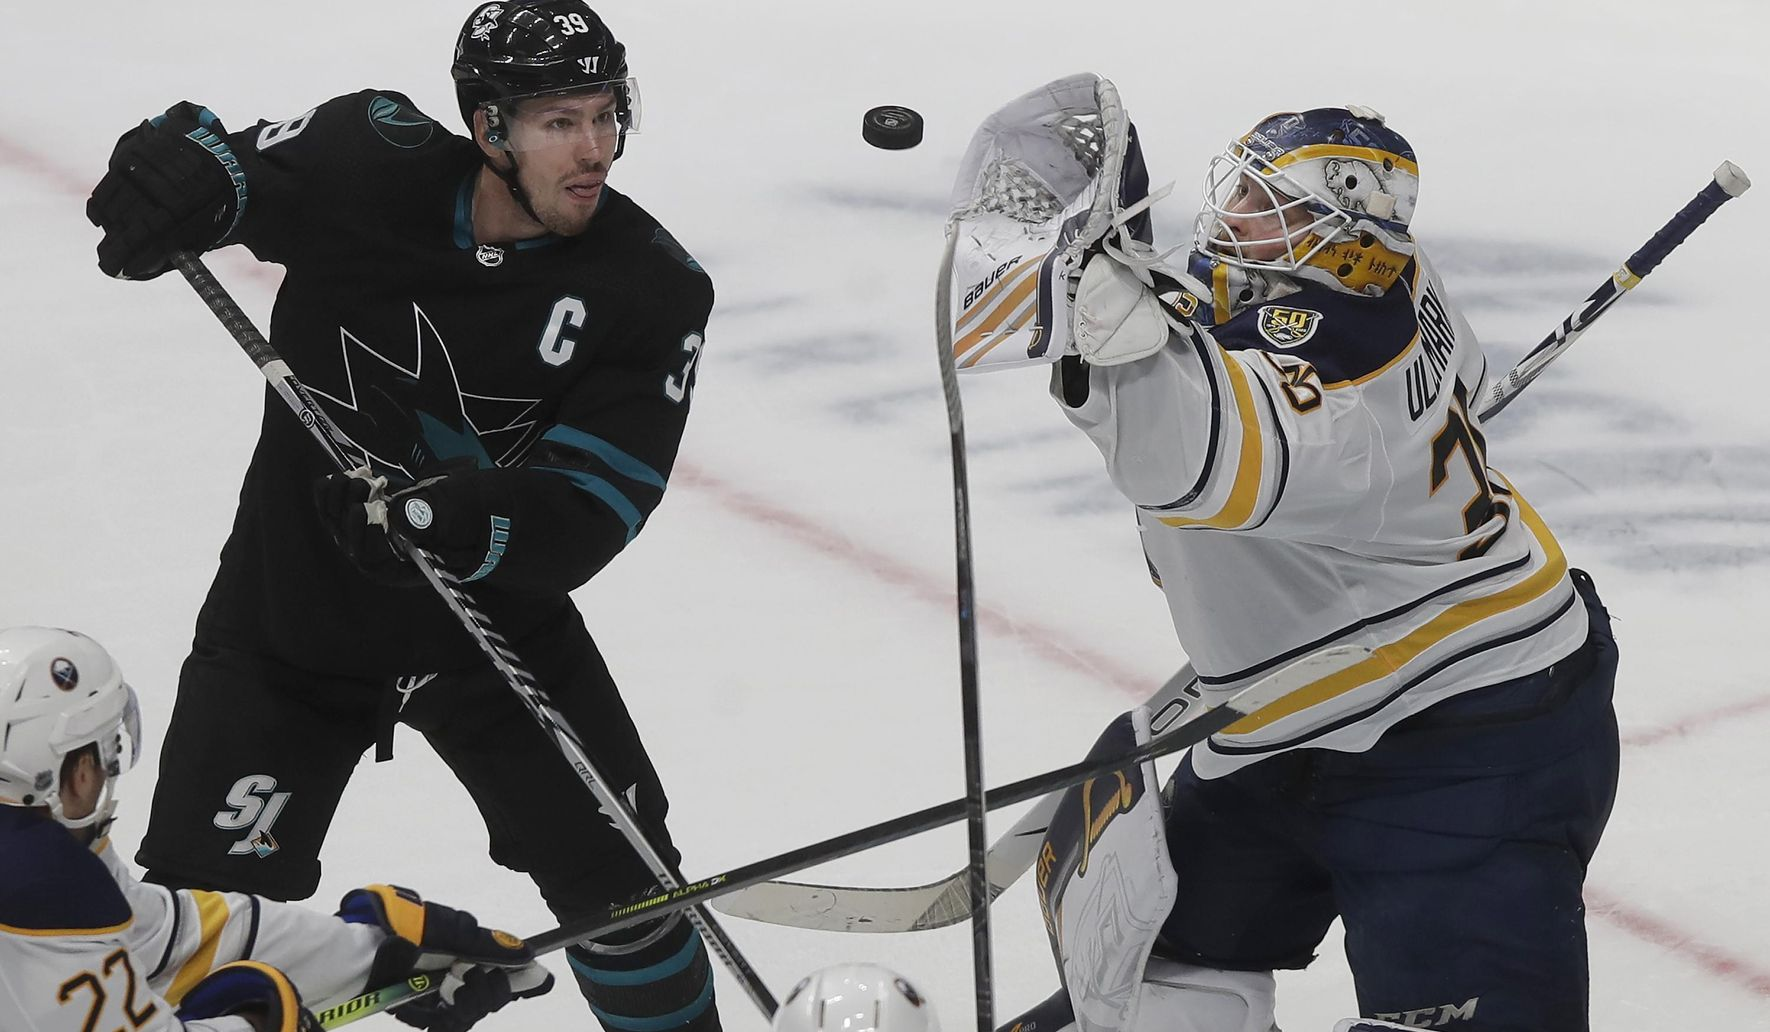 Sabres_sharks_hockey_91532_c0-125-3000-1874_s1770x1032